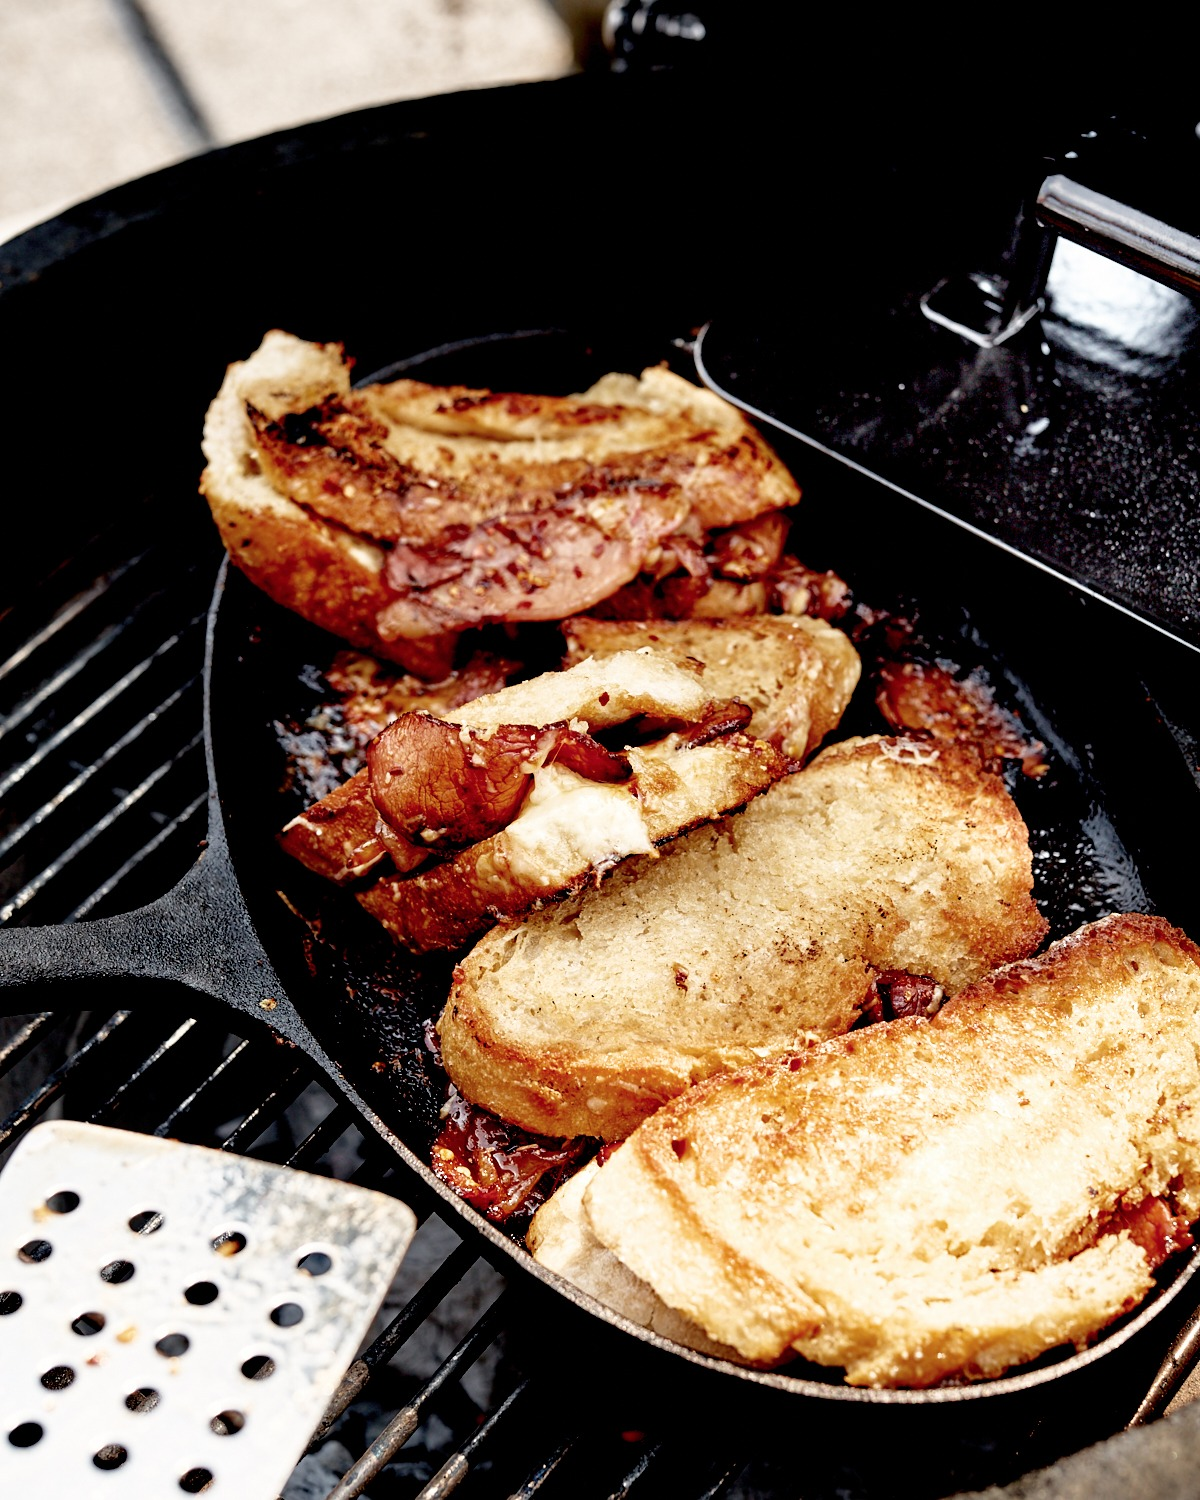 Grilled cheese1_PHOTO-2018-05-29-15-26-0